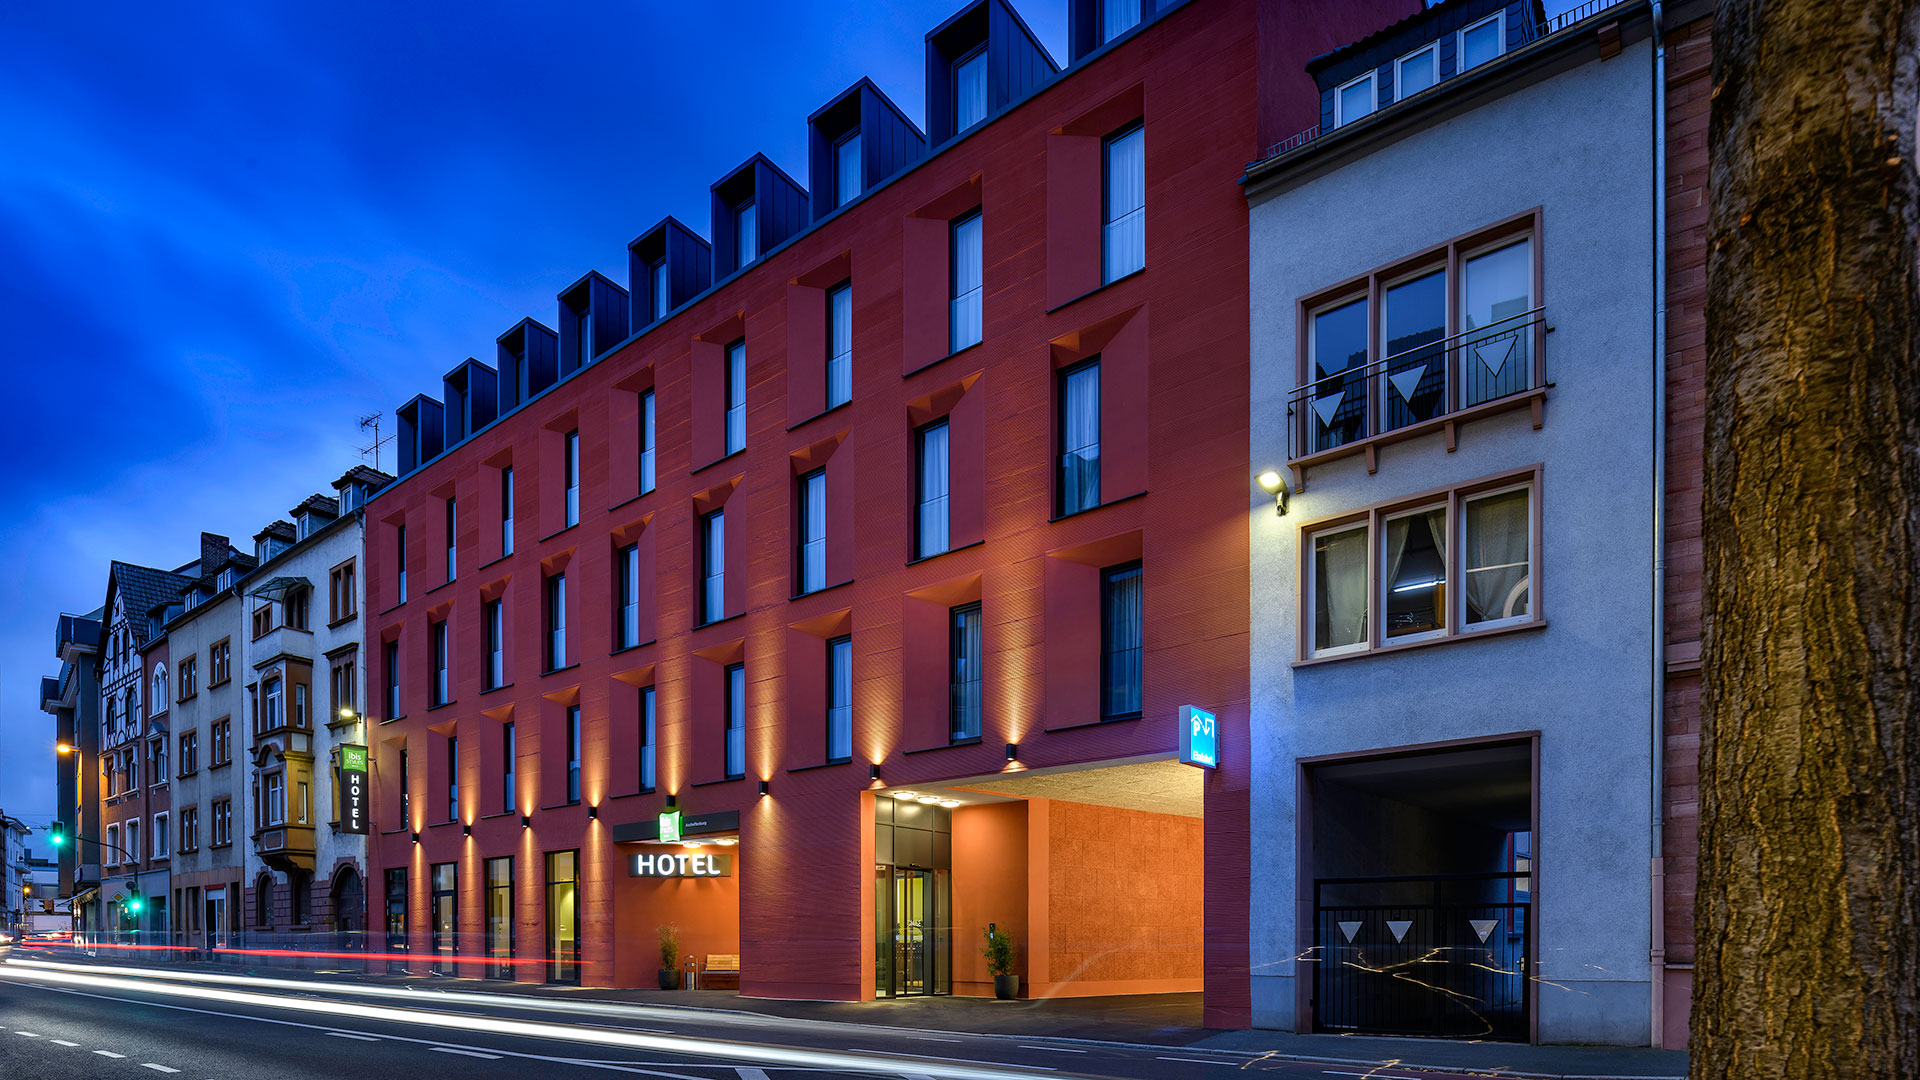 Photo of the exterior view - 01 - ibis Styles Aschaffenburg